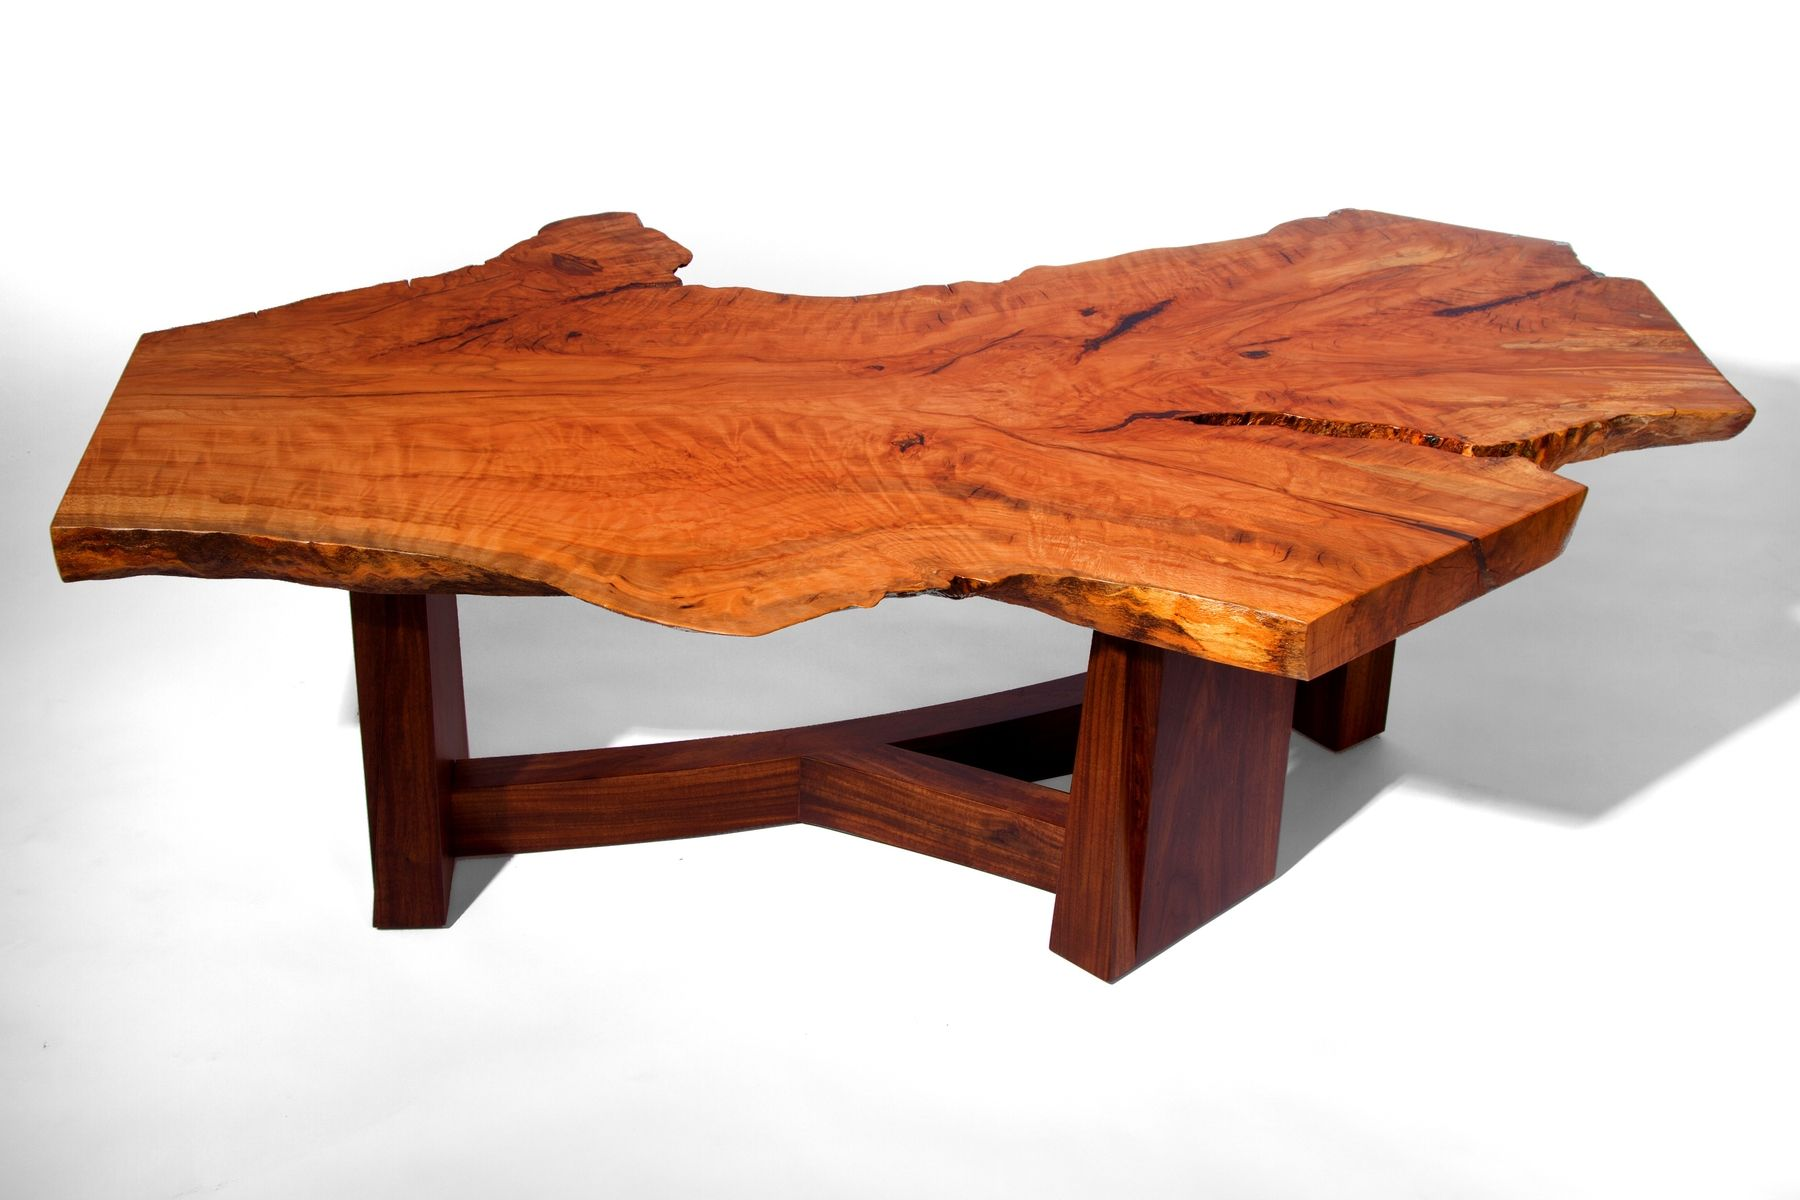 Hand Made Live Edge Beech Slab Coffee Table by J Holtz Furniture